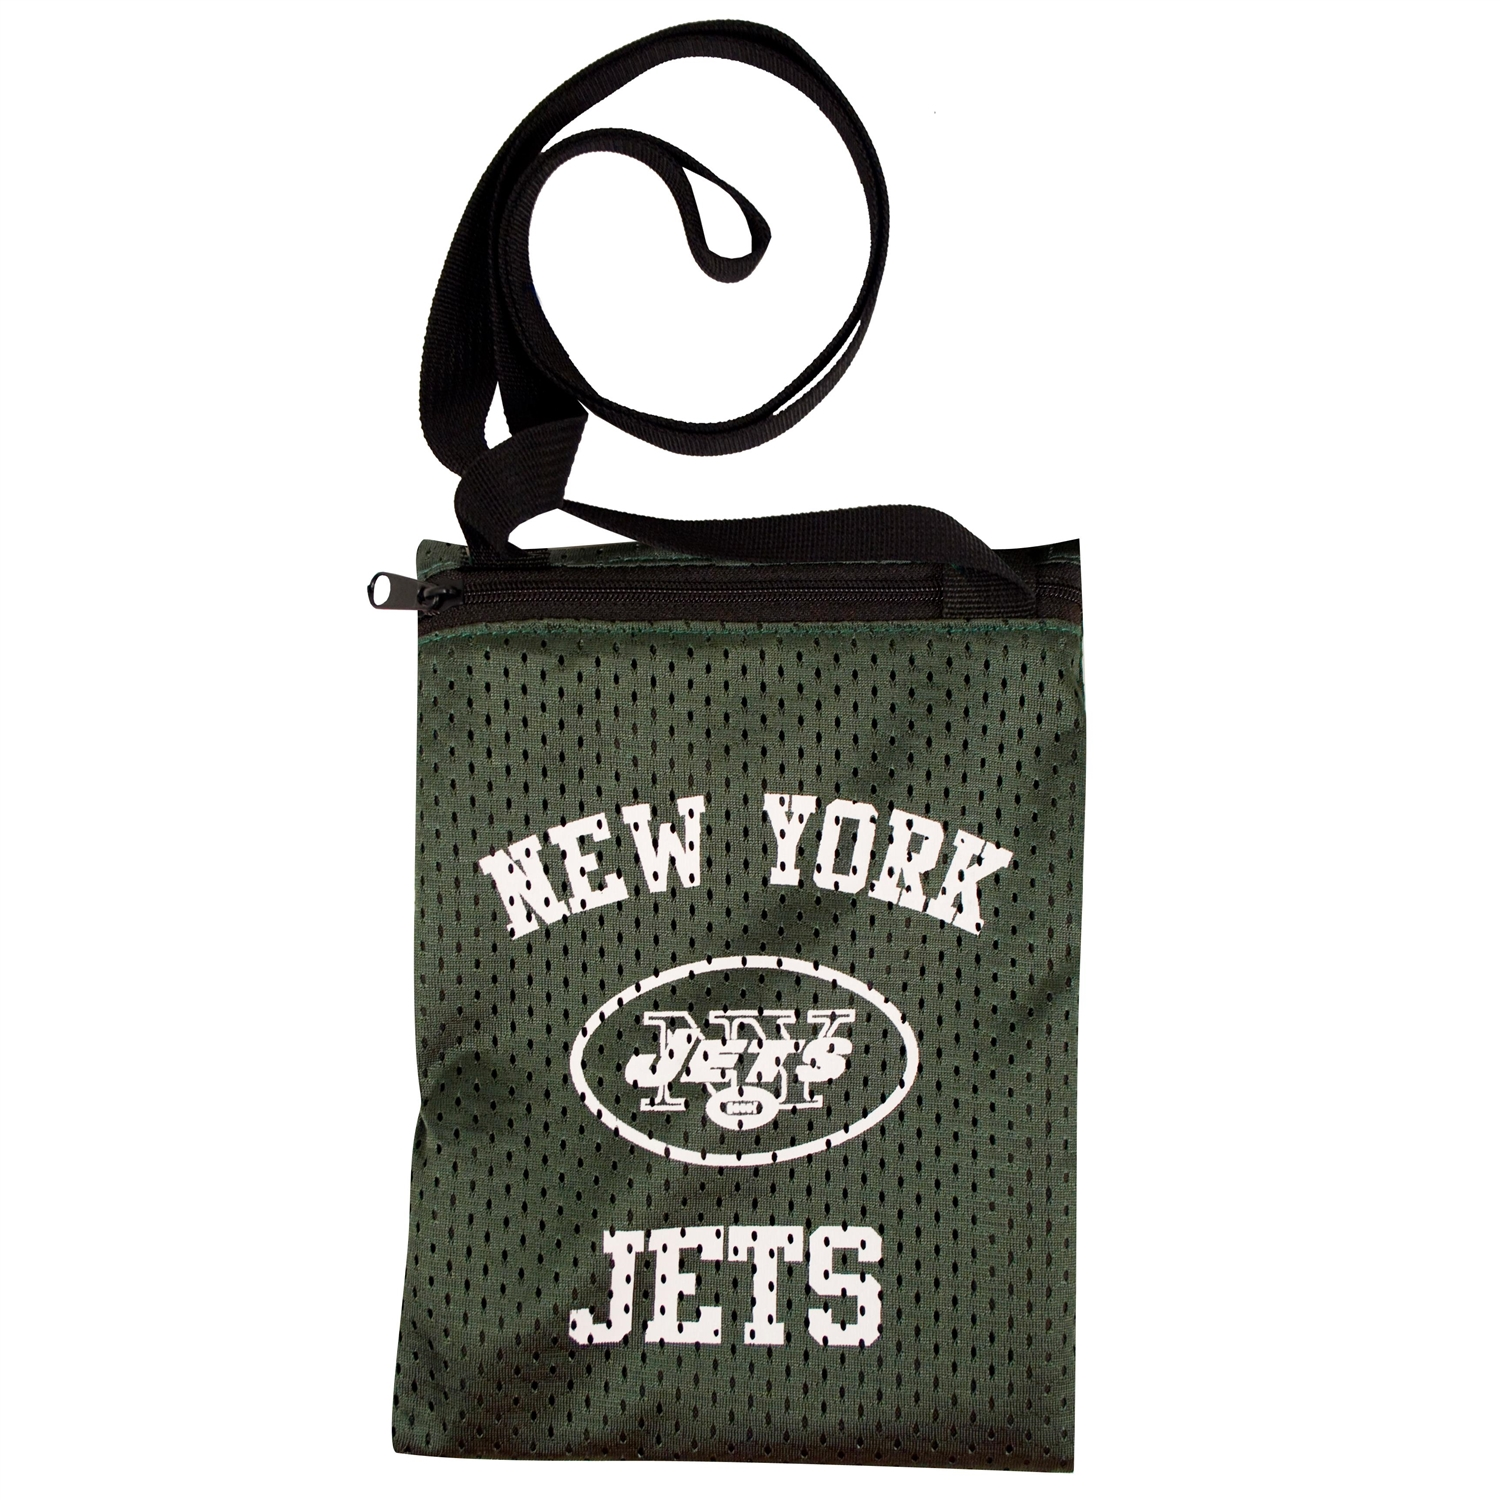 Nfl Football New York Jets Toys Games Puzzles Games - 300103-jets - New York Jets Game Day Pouch 300103-JETS